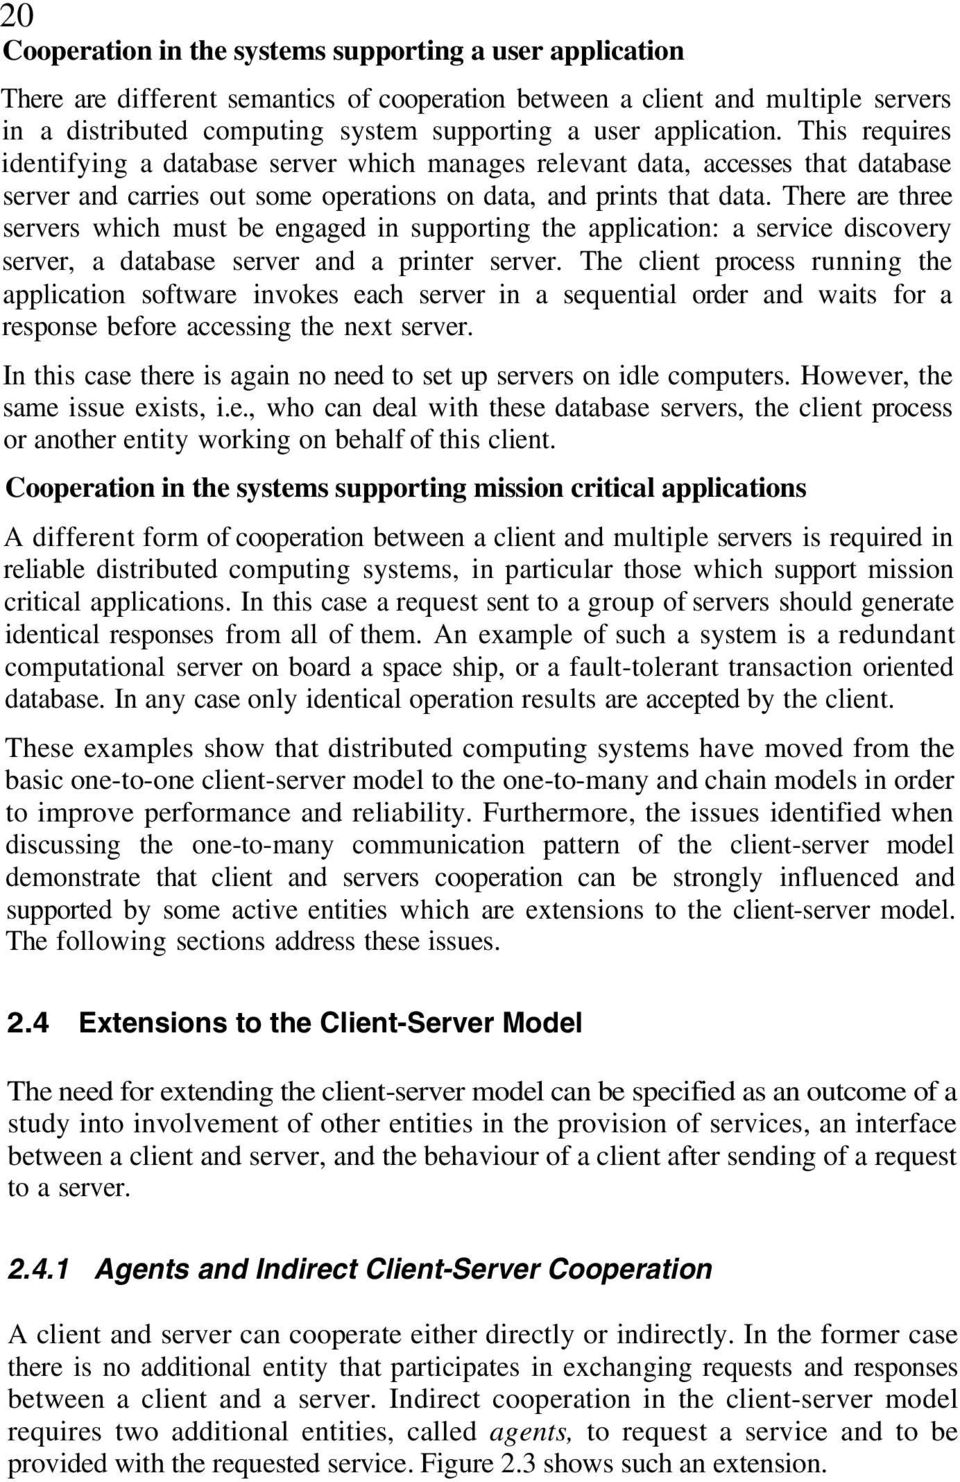 There are three servers which must be engaged in supporting the application: a service discovery server, a database server and a printer server.